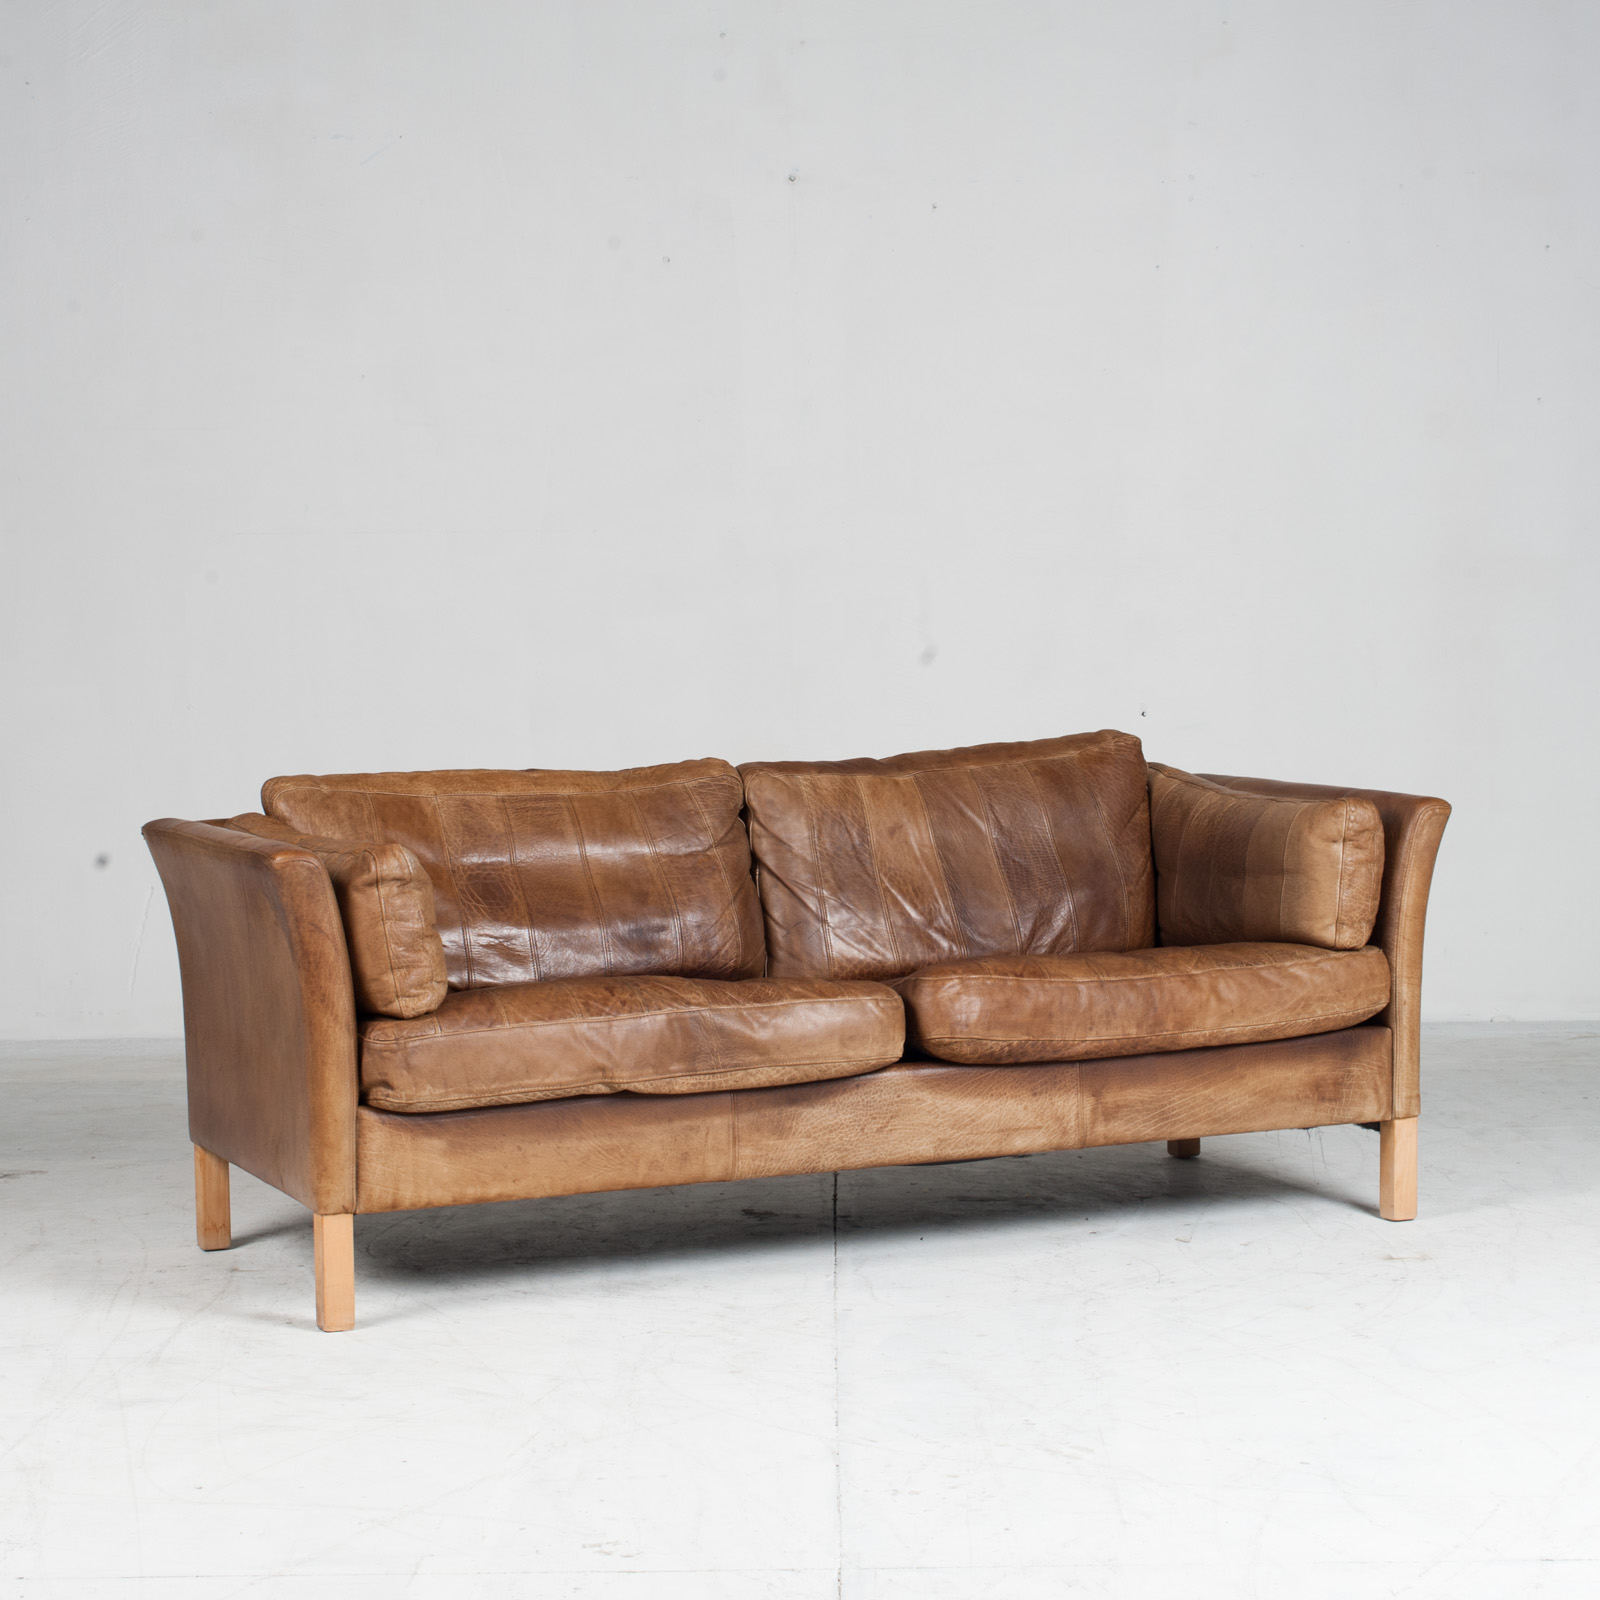 2.5 Seat Sofa In Tan Panelled Leather 1960s Denmark2